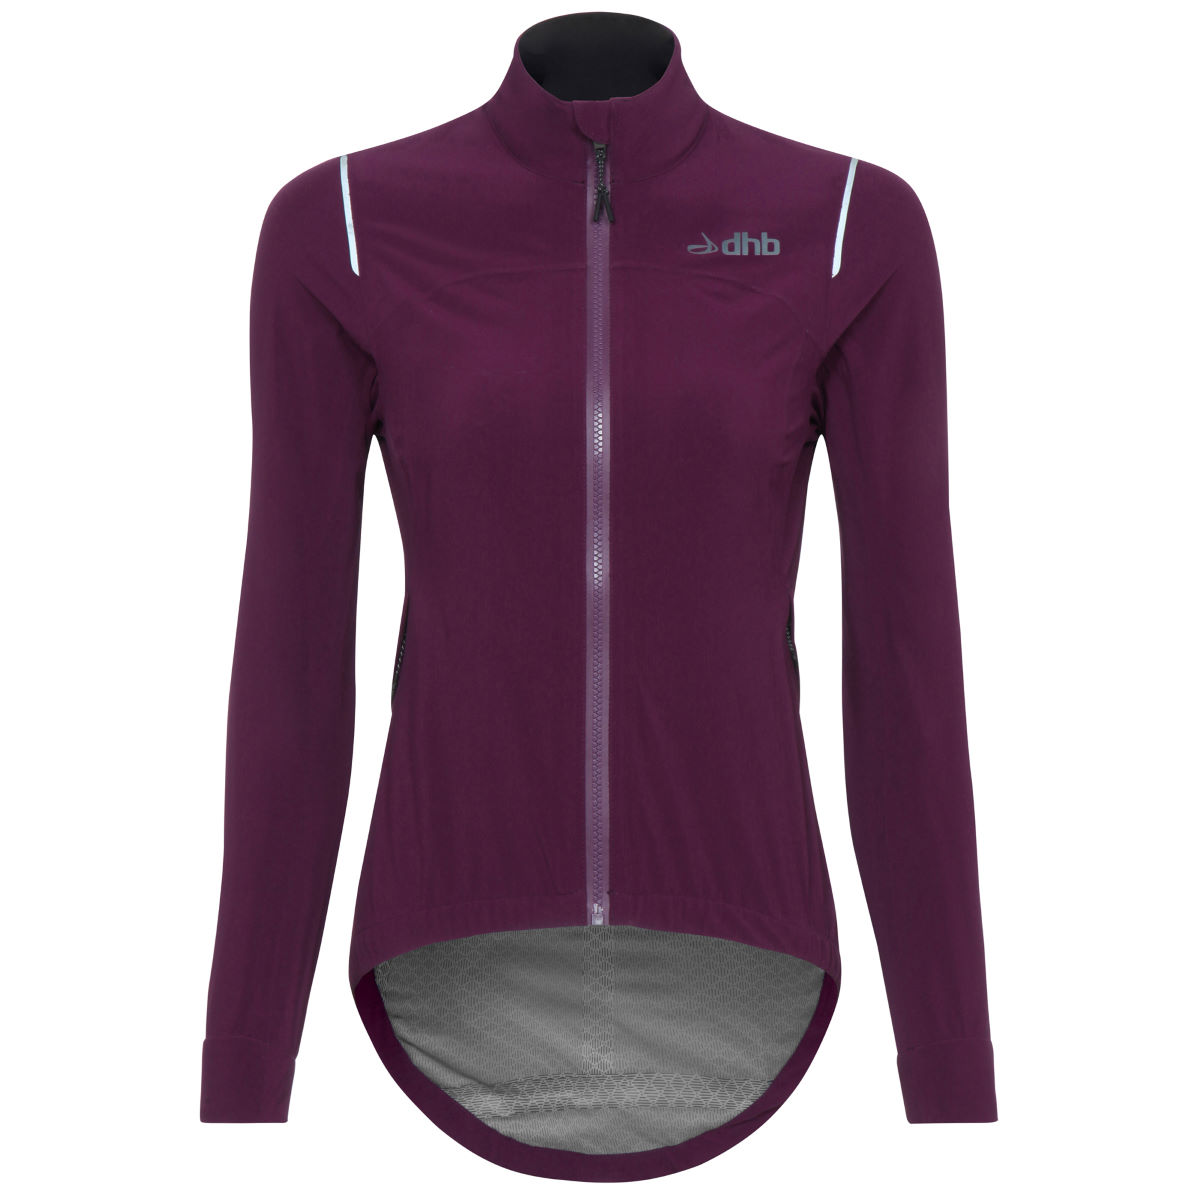 dhb dhb Aeron Womens Storm FLT Waterproof Jacket   Jackets